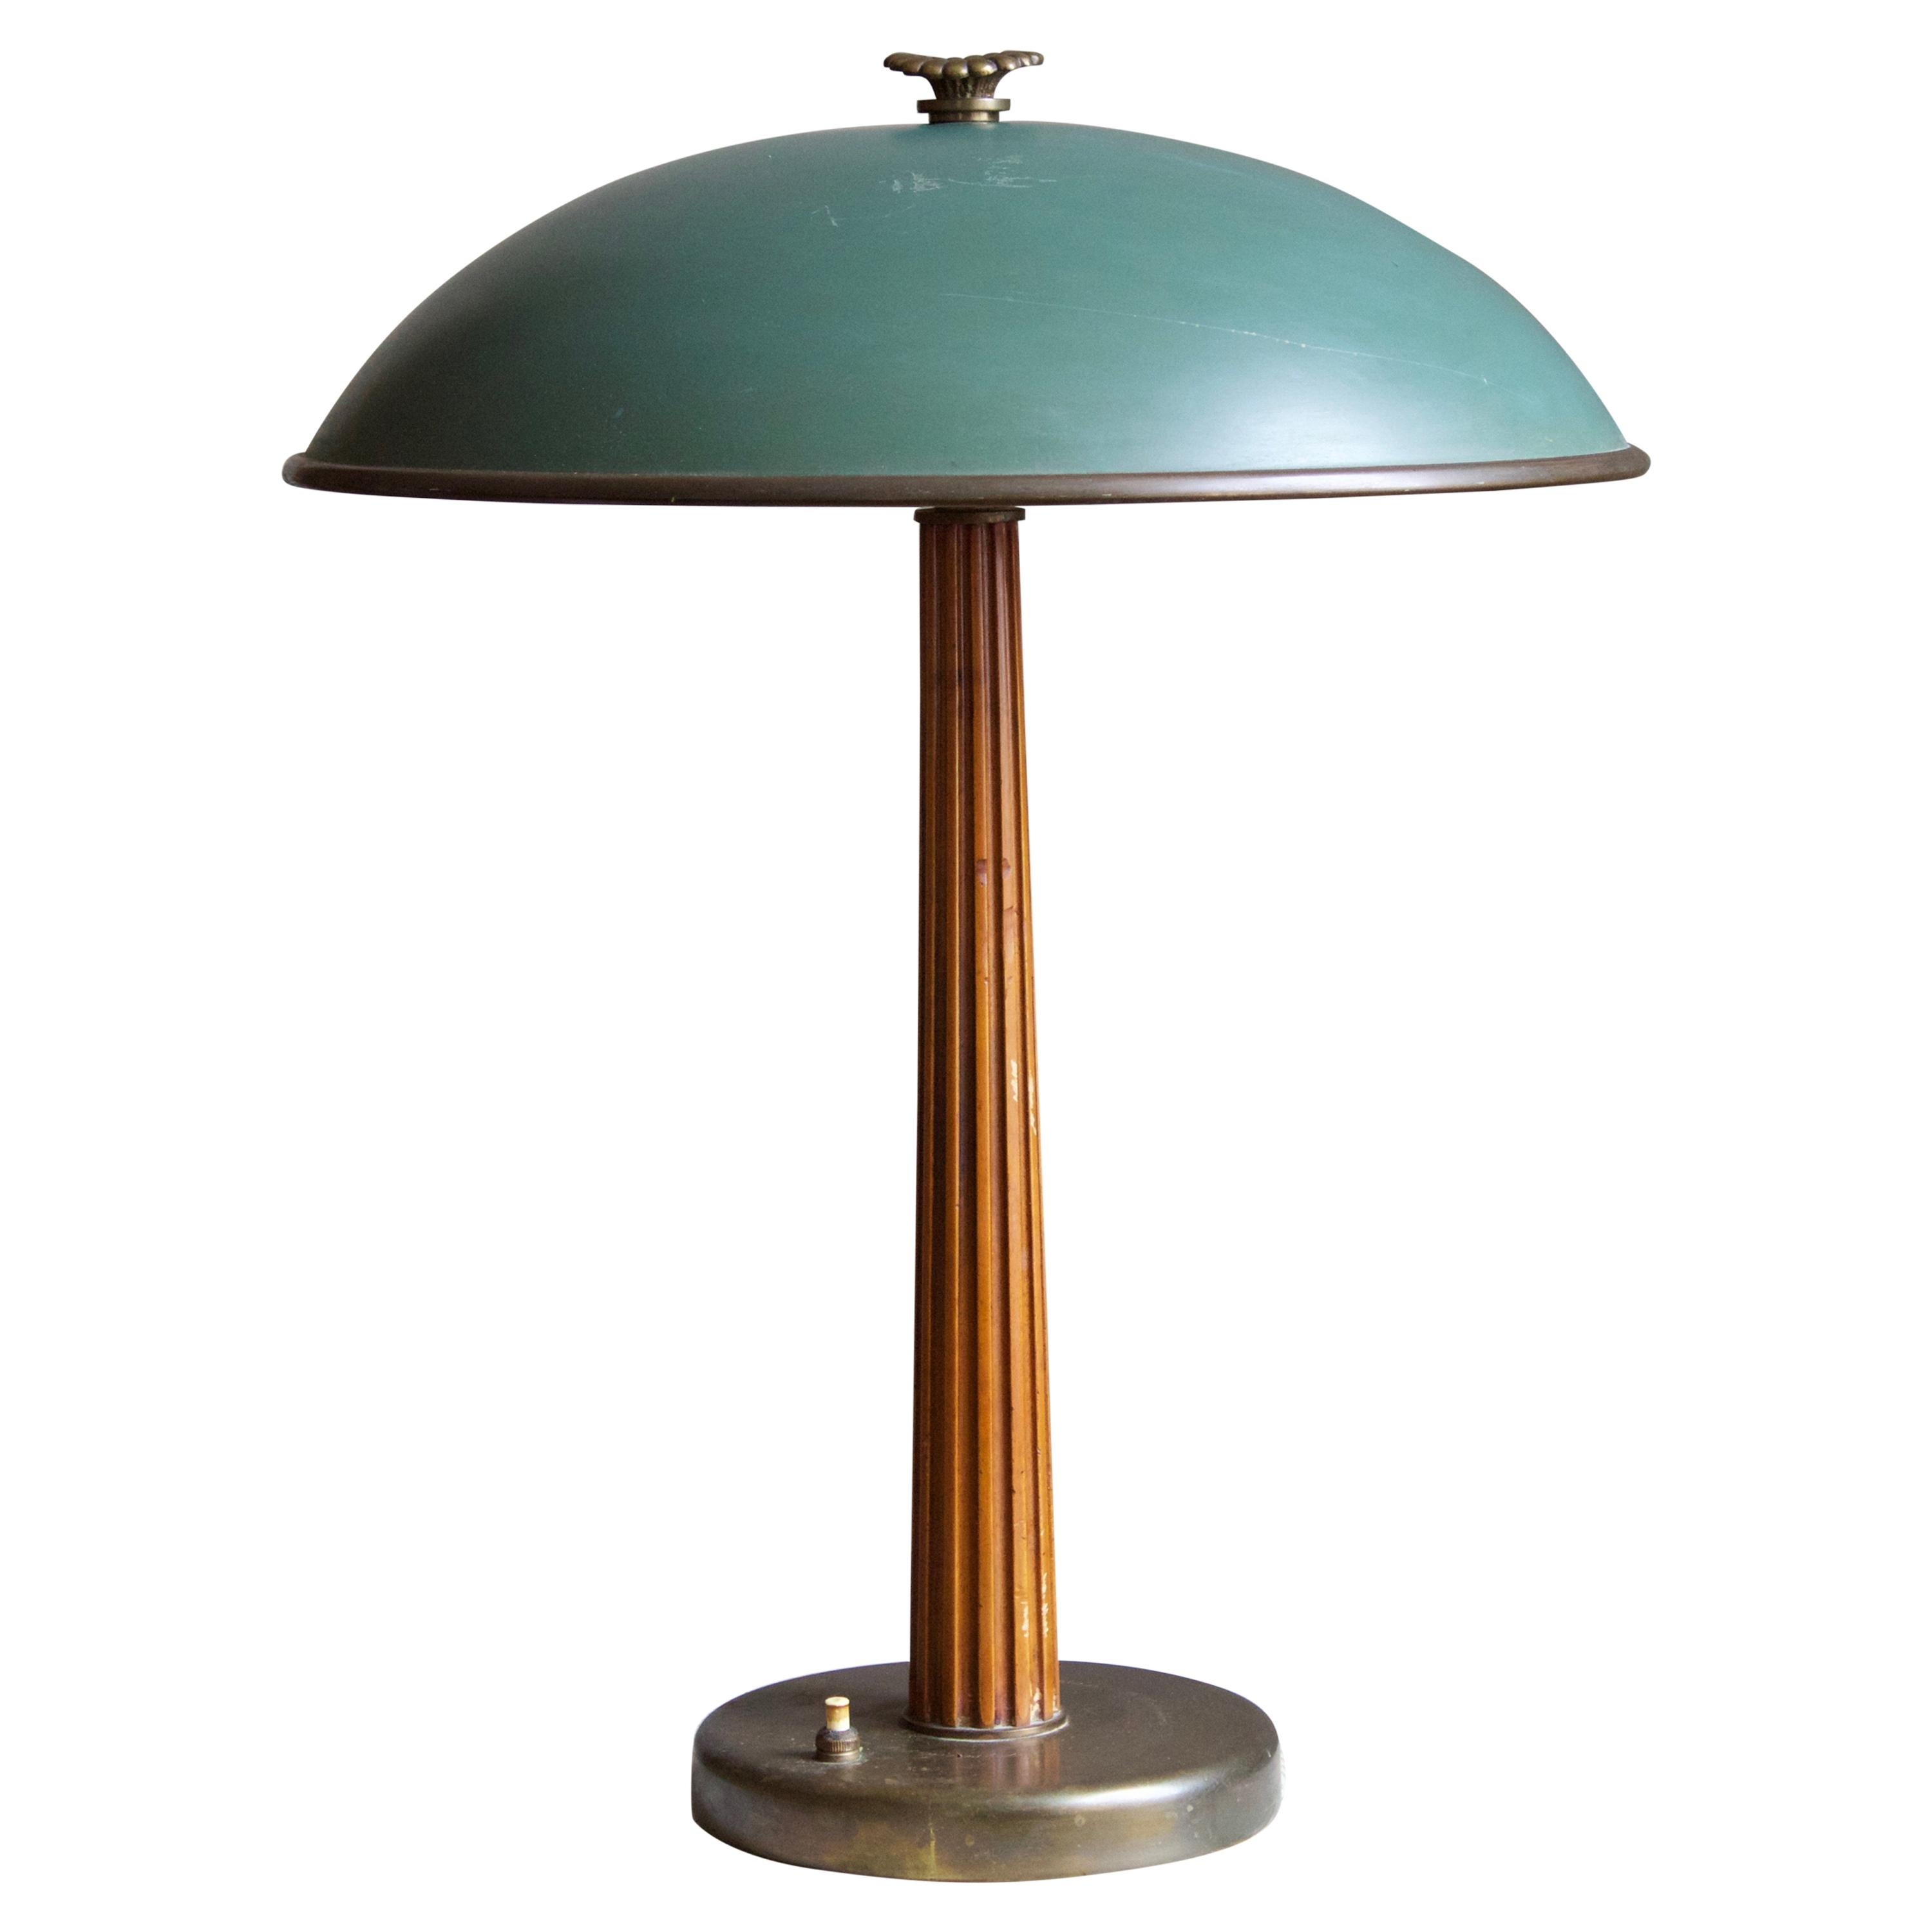 Böhlmarks, Table Lamp Brass, Stained Elm, Lacquered Steel, 1935